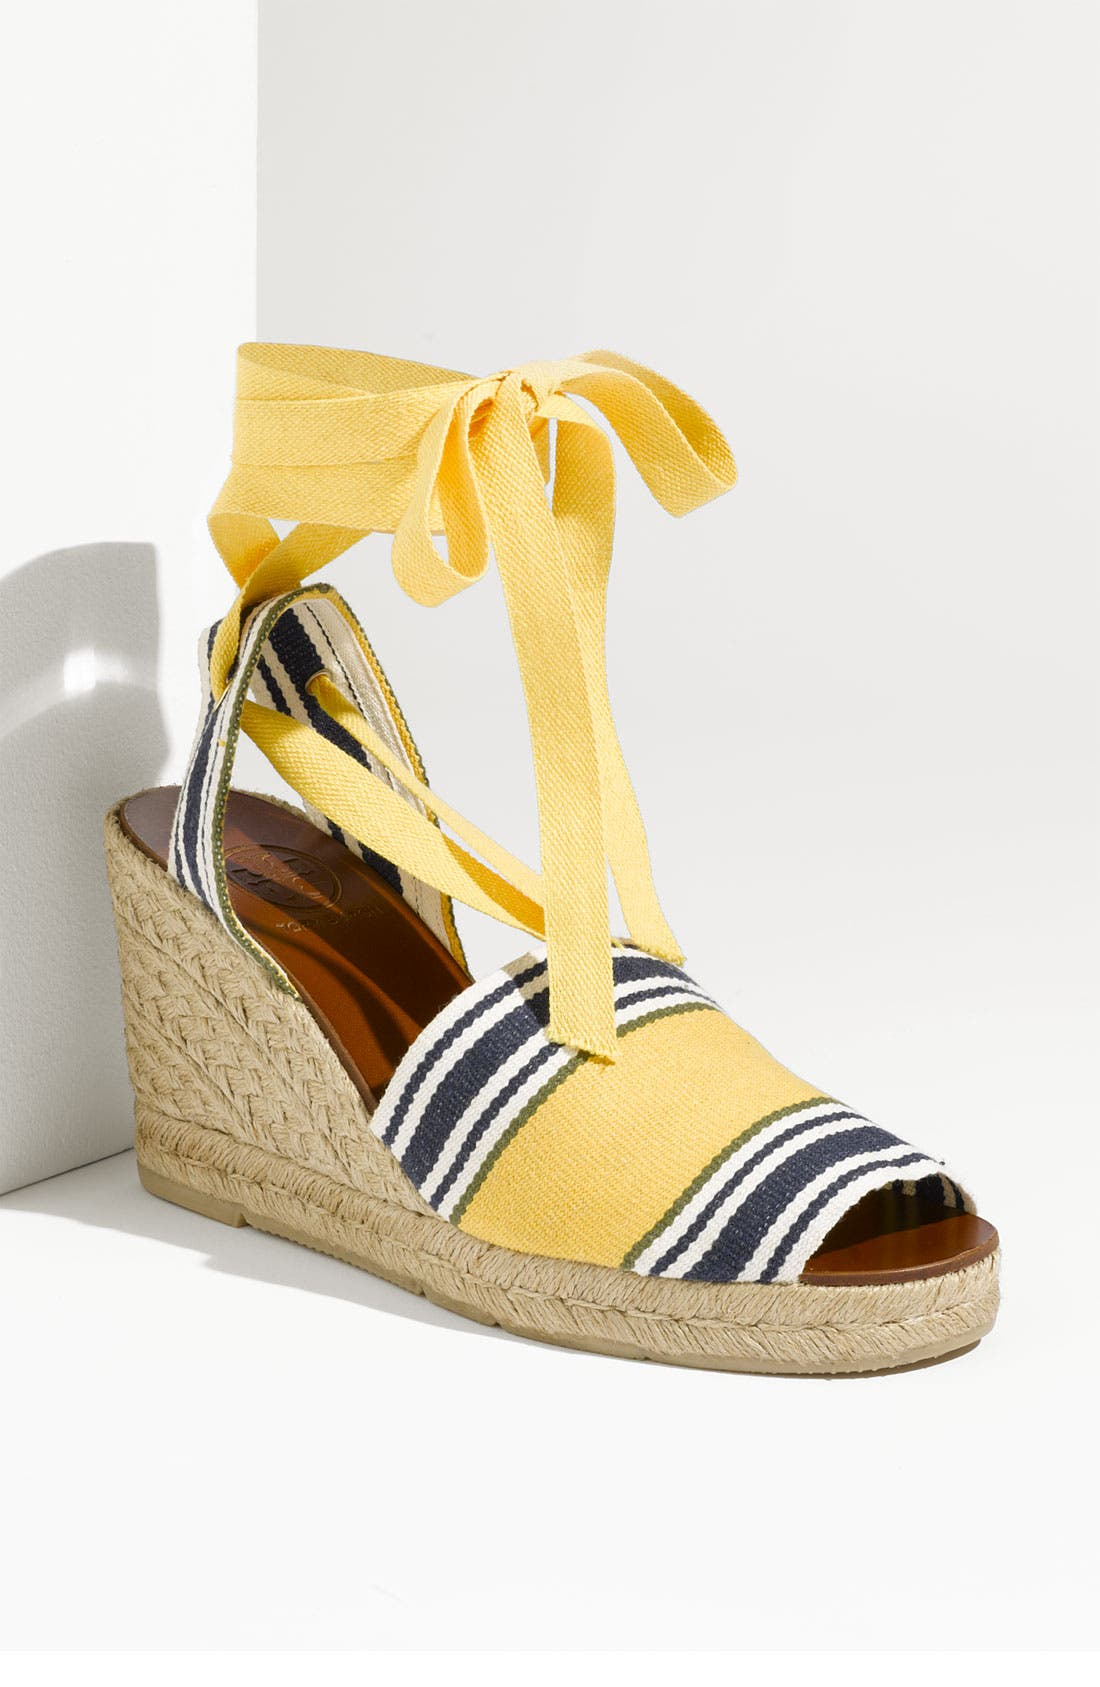 Main Image - Tory Burch 'Marabelle' Wedge Pump